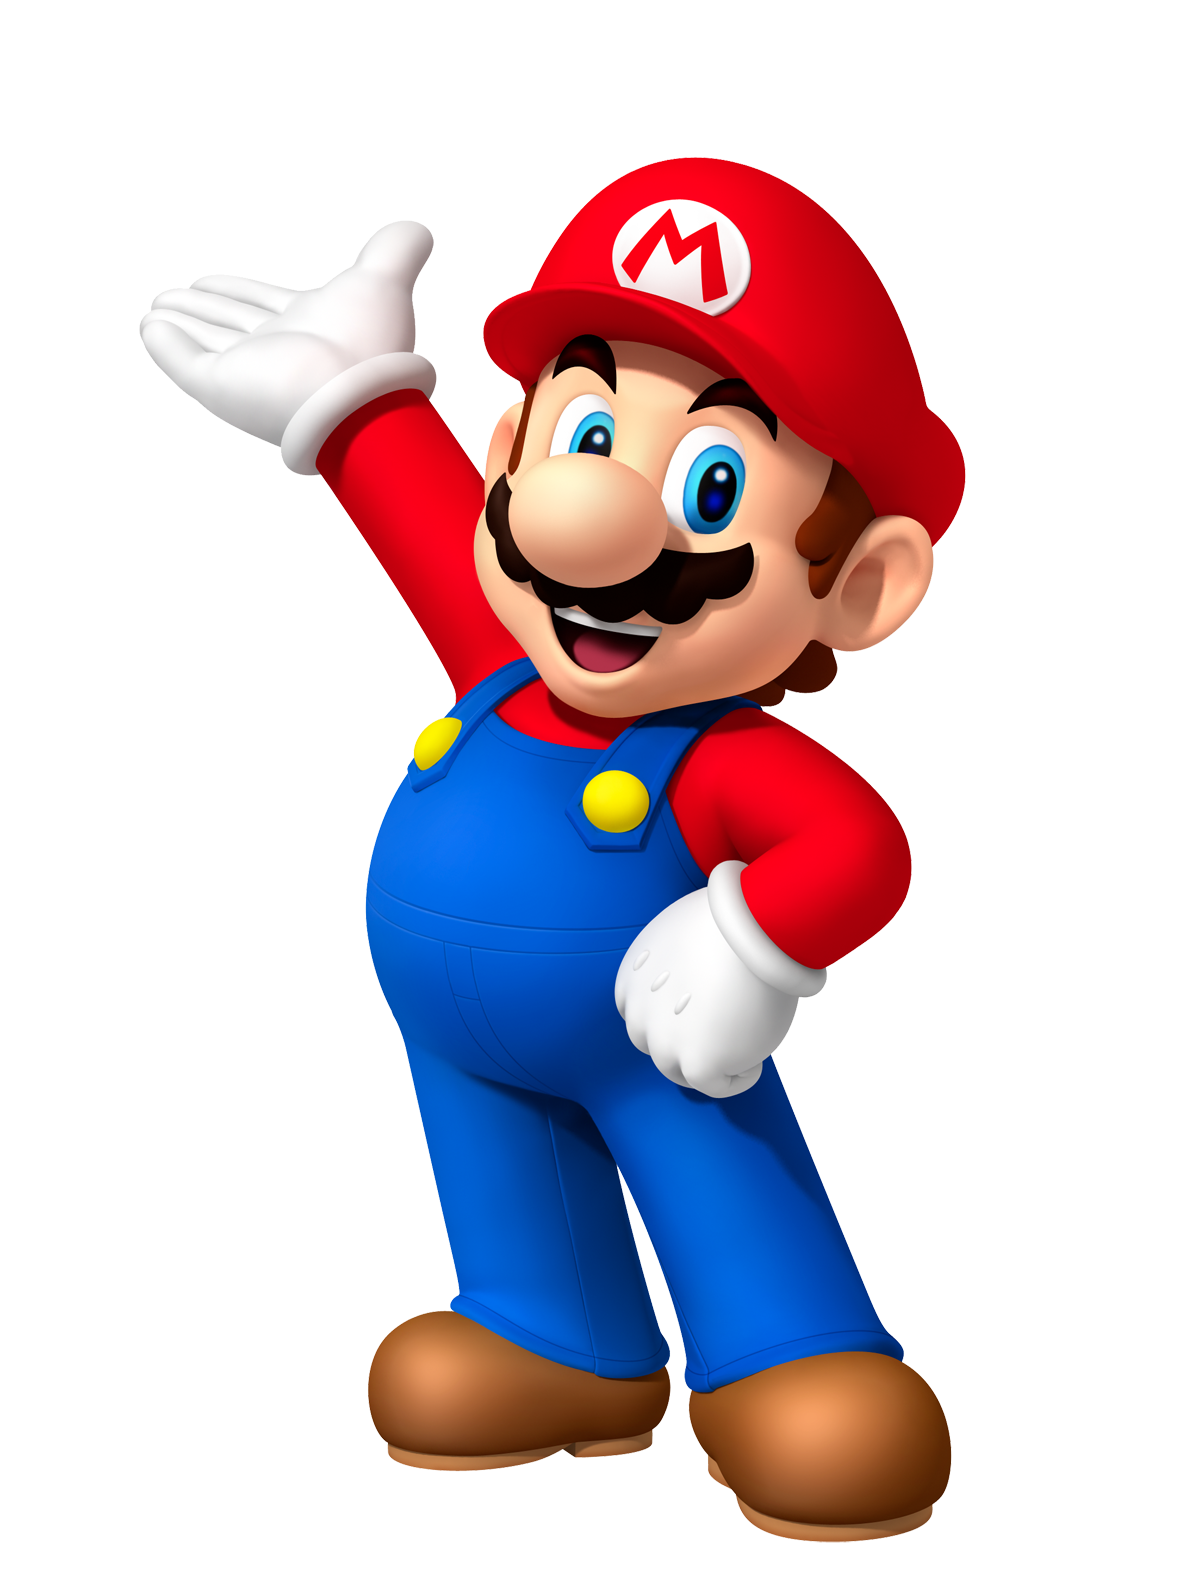 png free download Super Mario